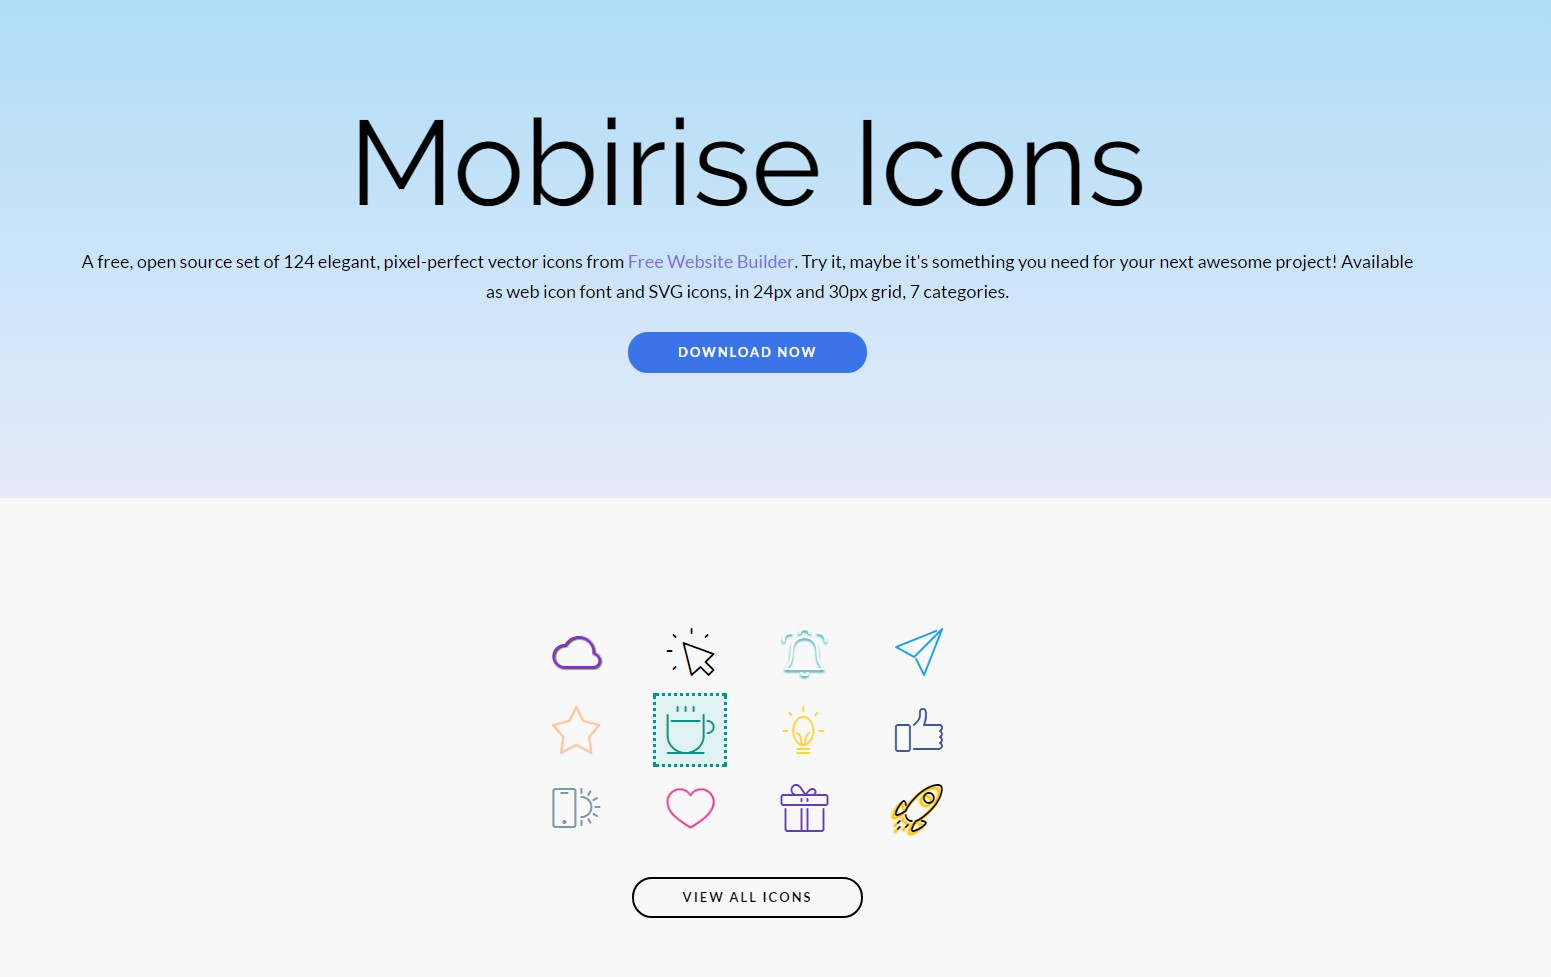 mobirise icons bundle